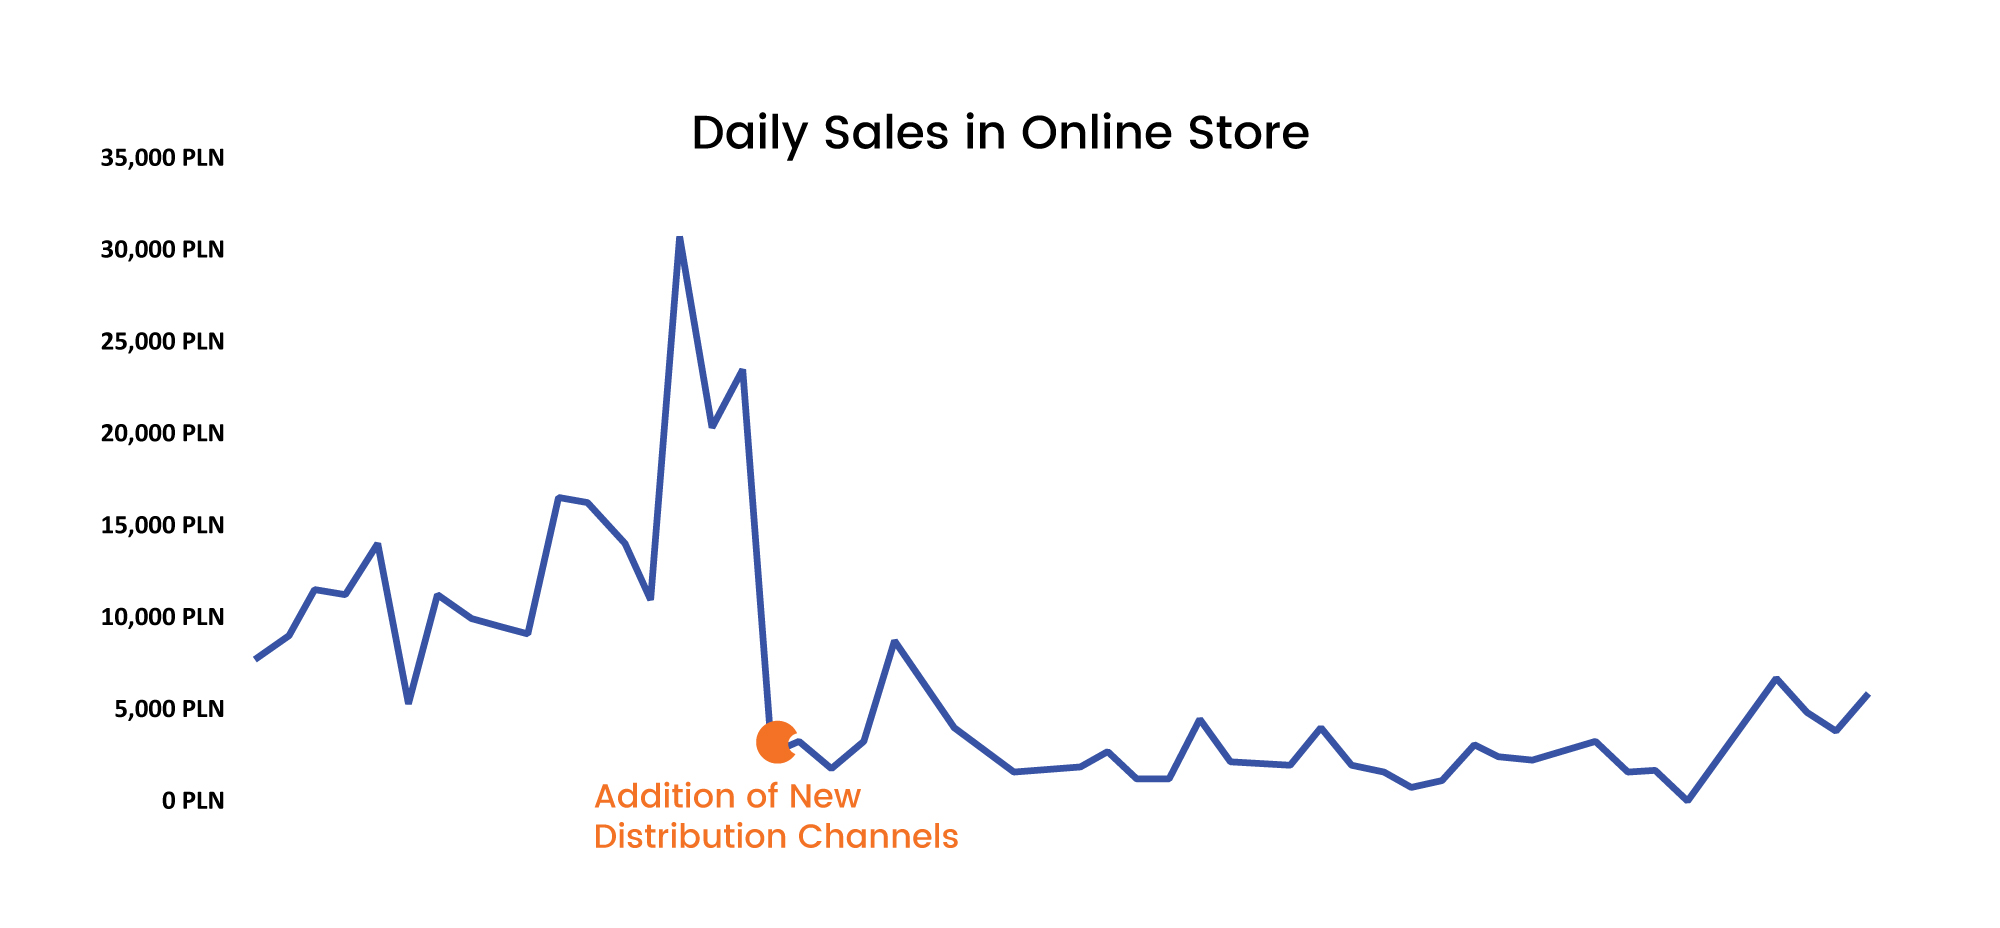 Graph of the daily sales in online store showing a fall in sales after addition of new distribution channels